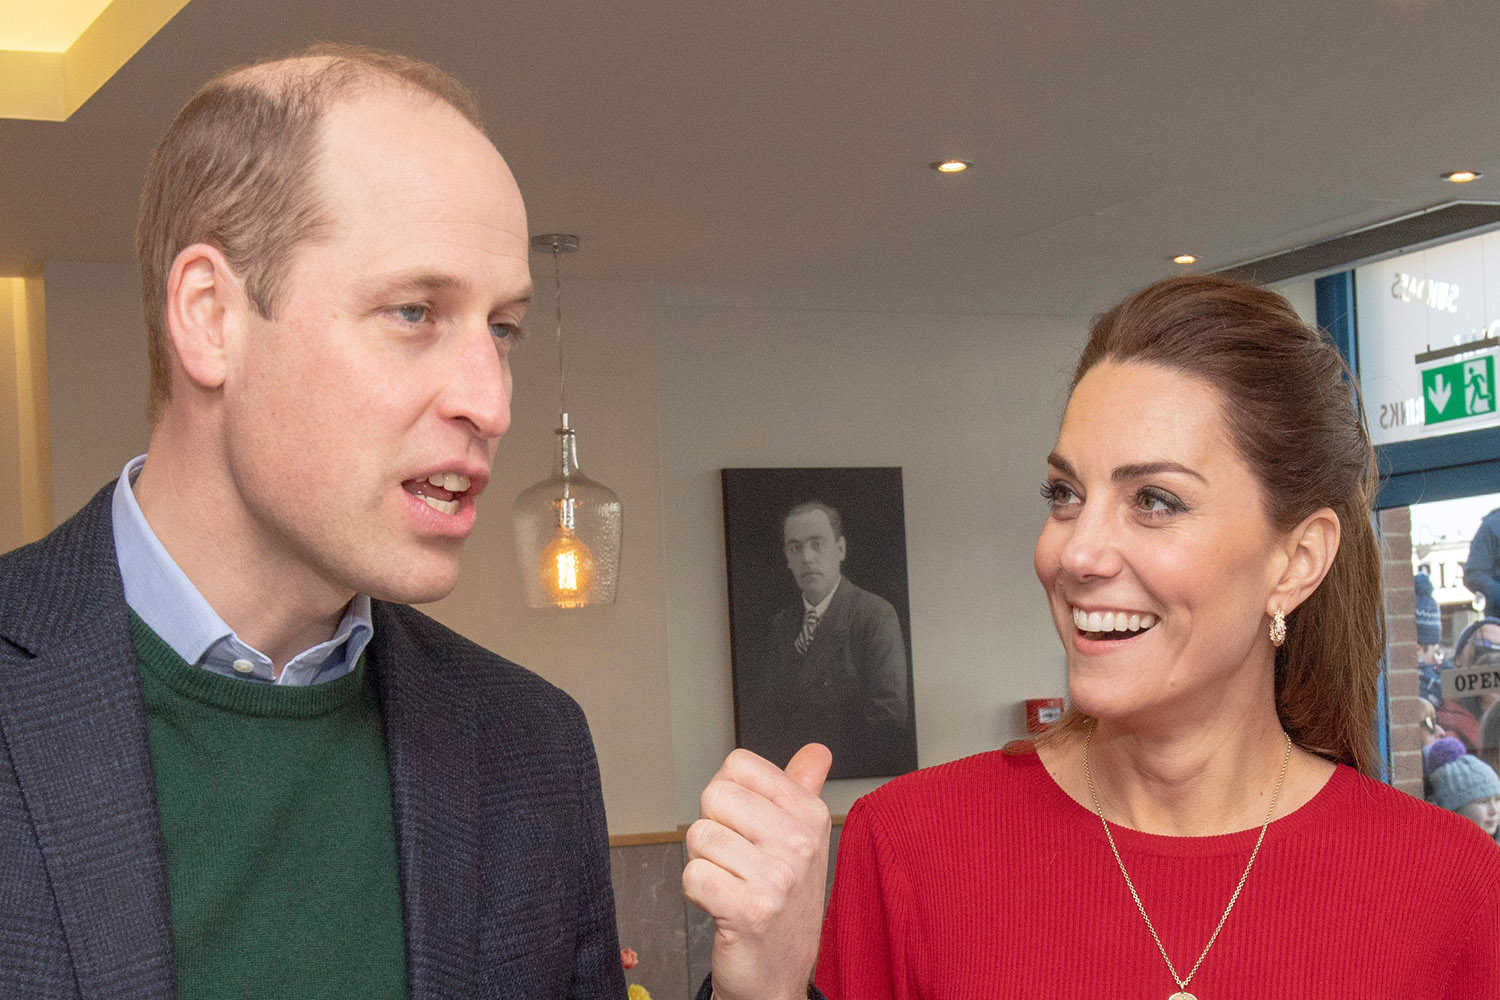 Prince William and Kate resume royal duties as they visit shop workers